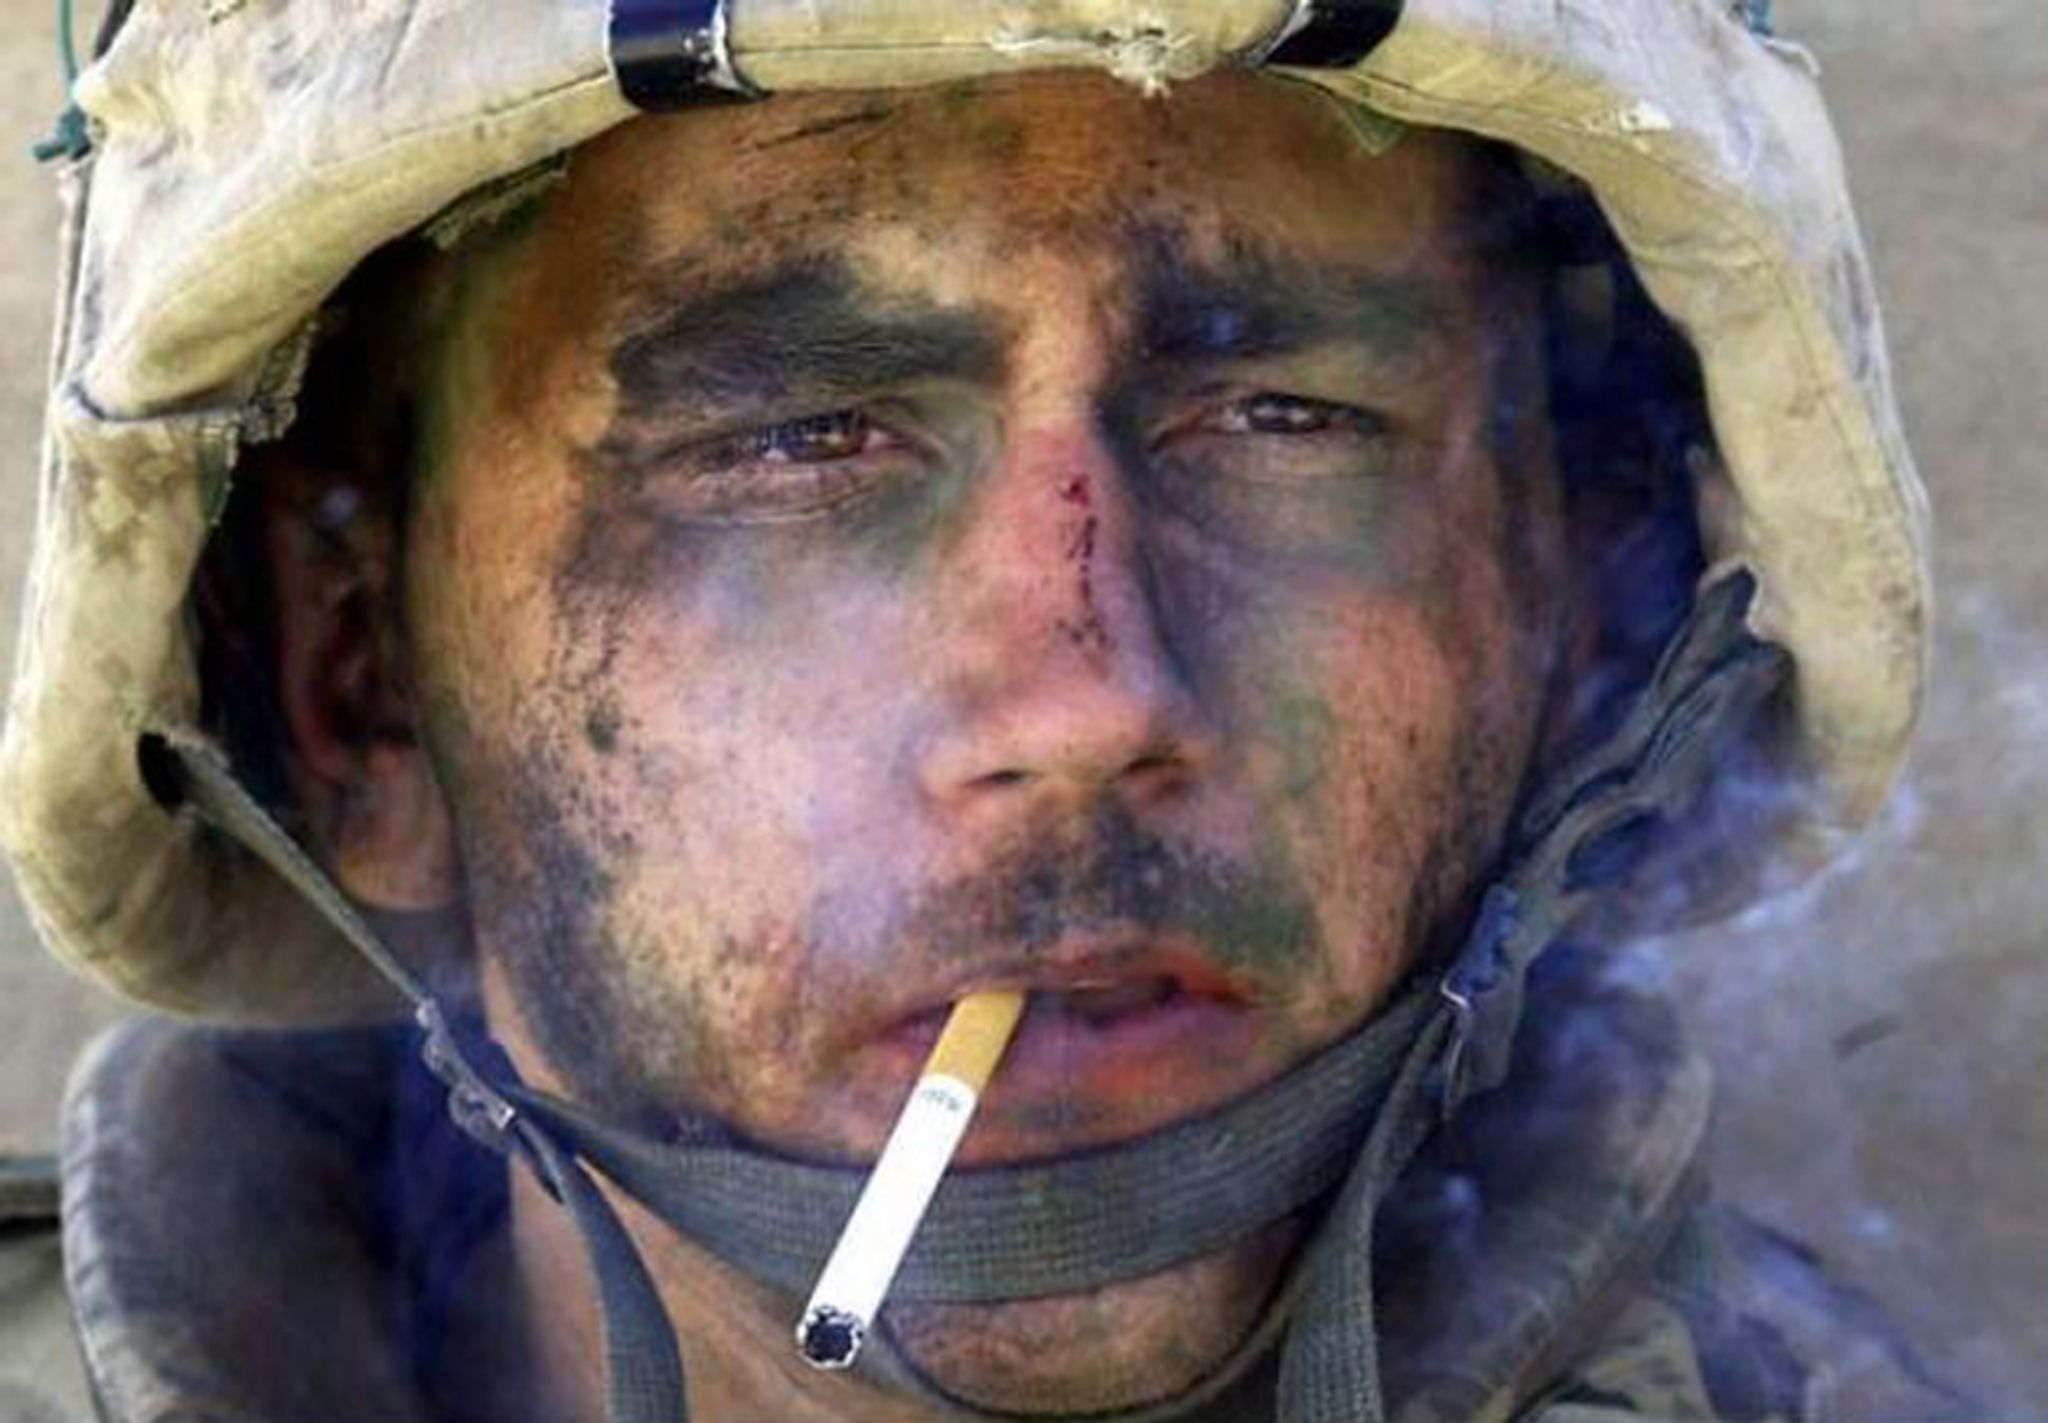 U.S. military decimated under Obama, only 'marginally able' to defend nation